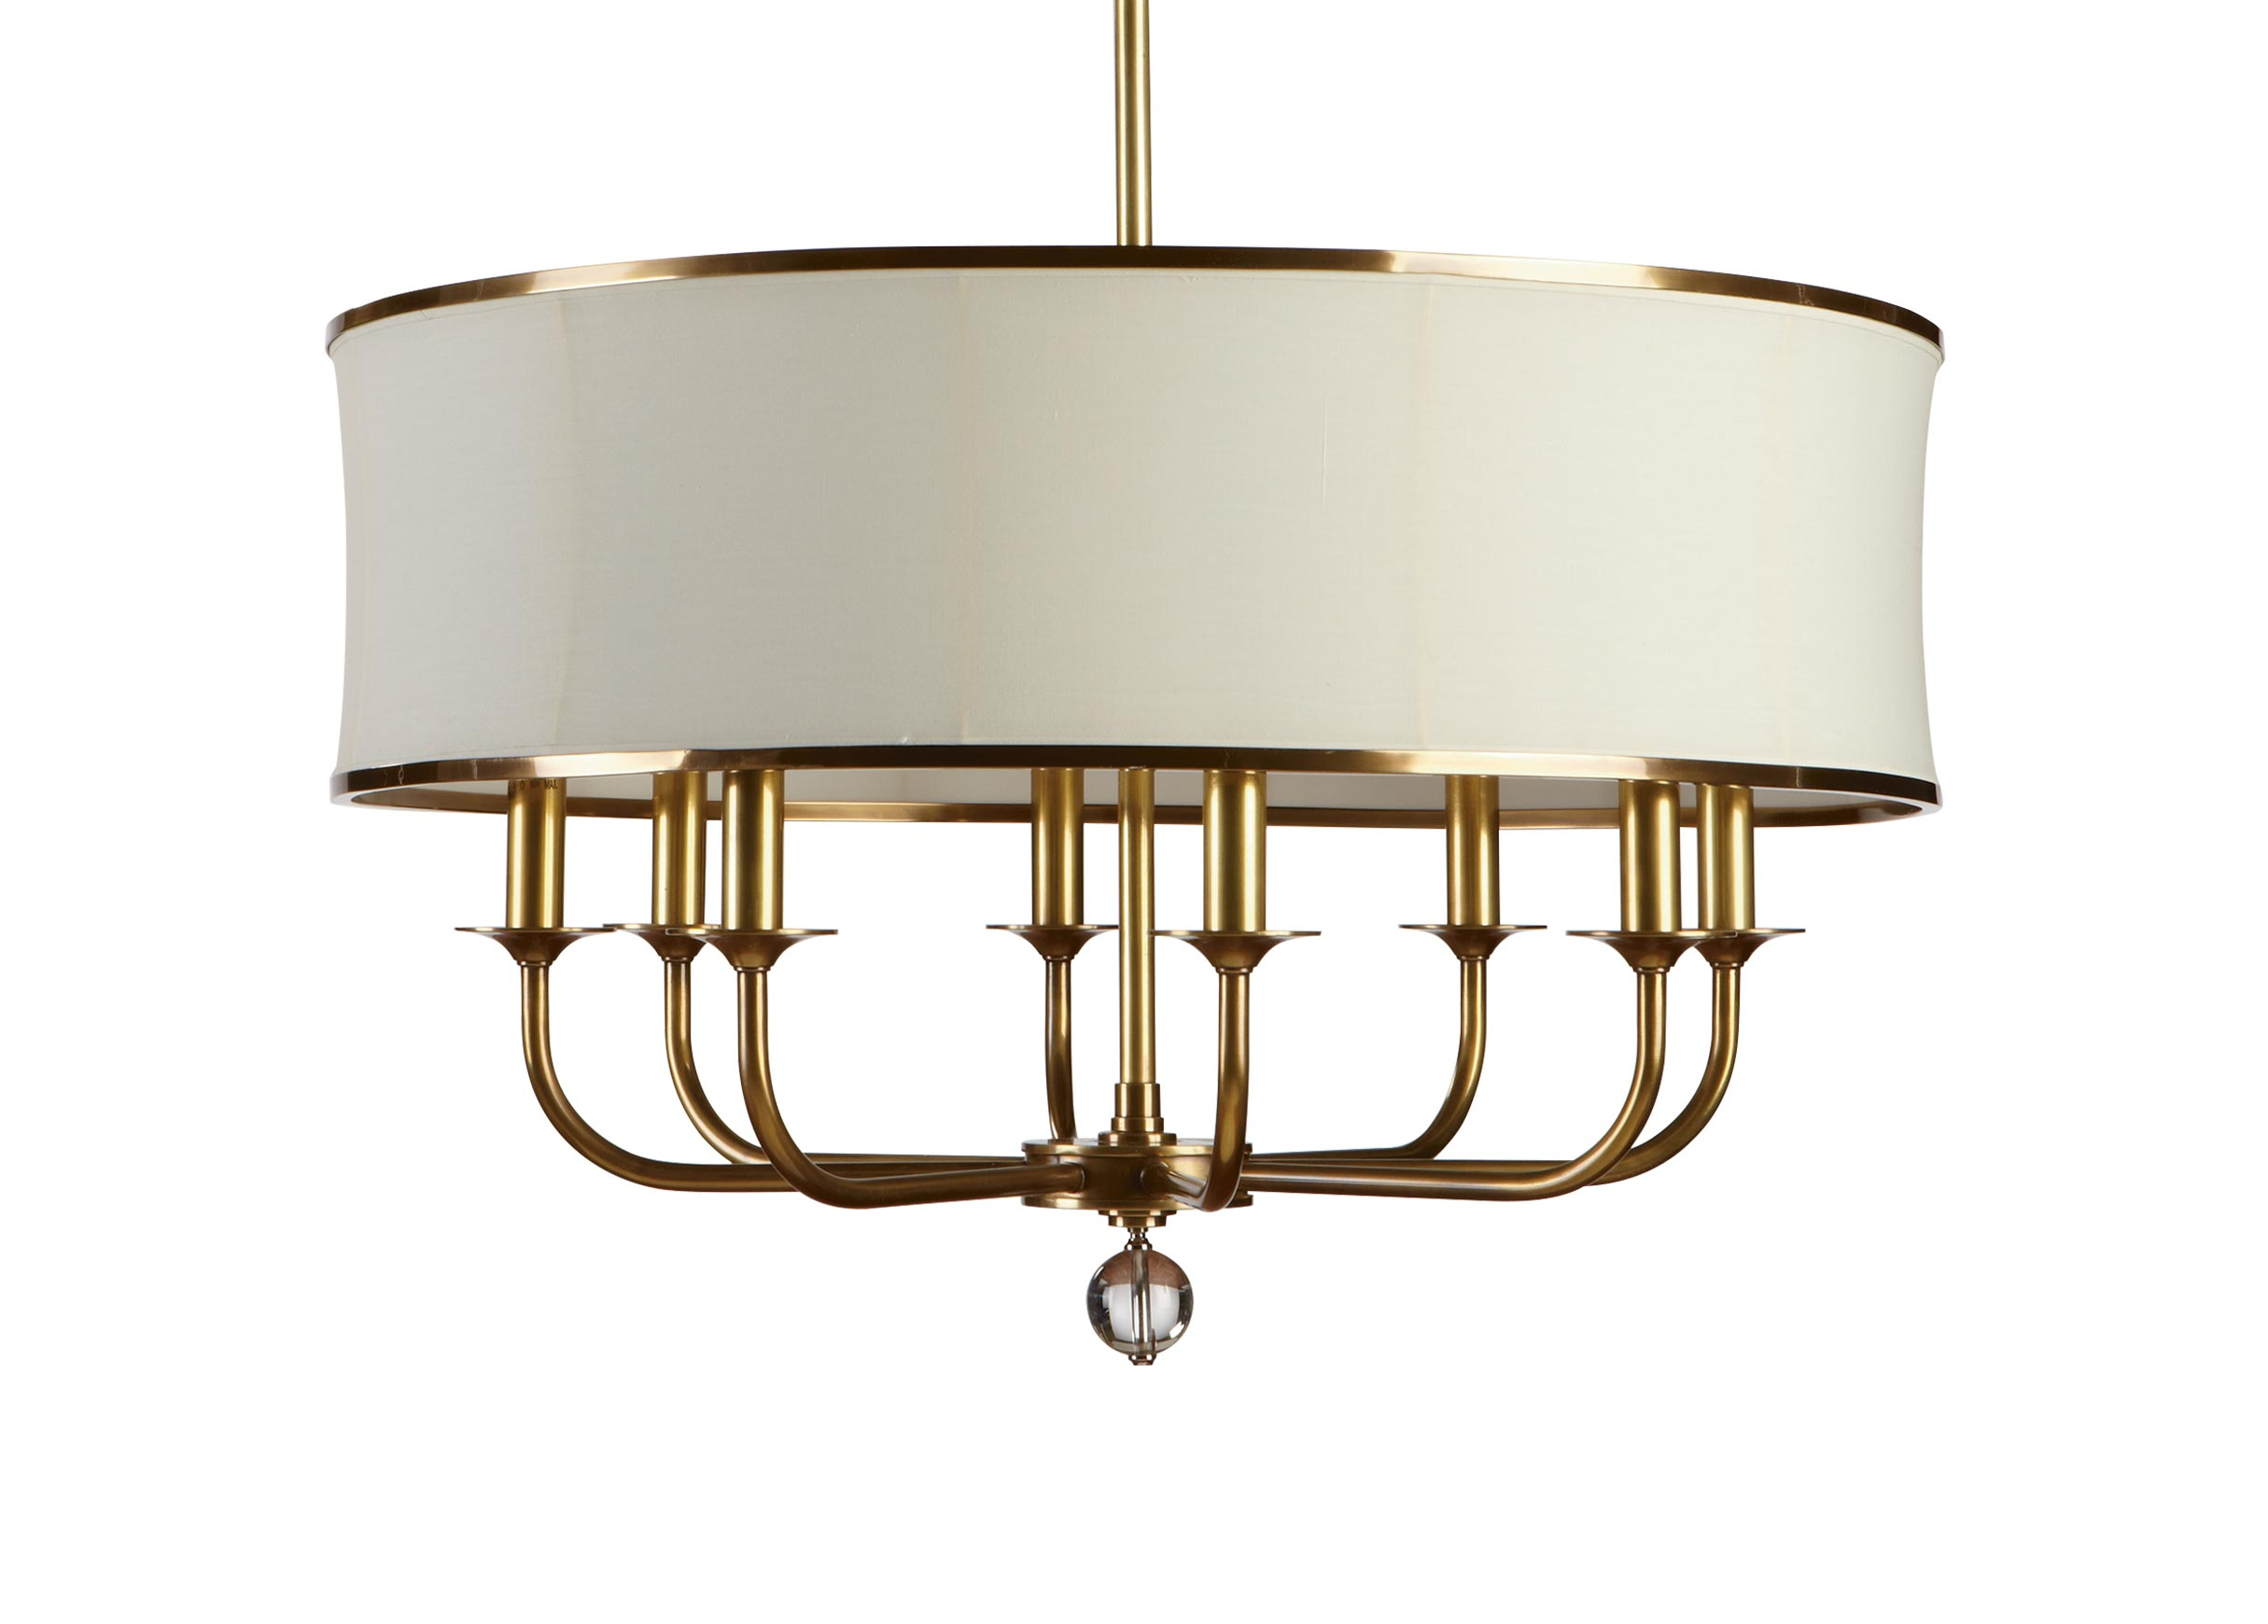 Zoe Eight Light Brass Chandelier   Chandeliers   Ethan Allen Within Shaylee 6 Light Candle Style Chandeliers (View 30 of 30)